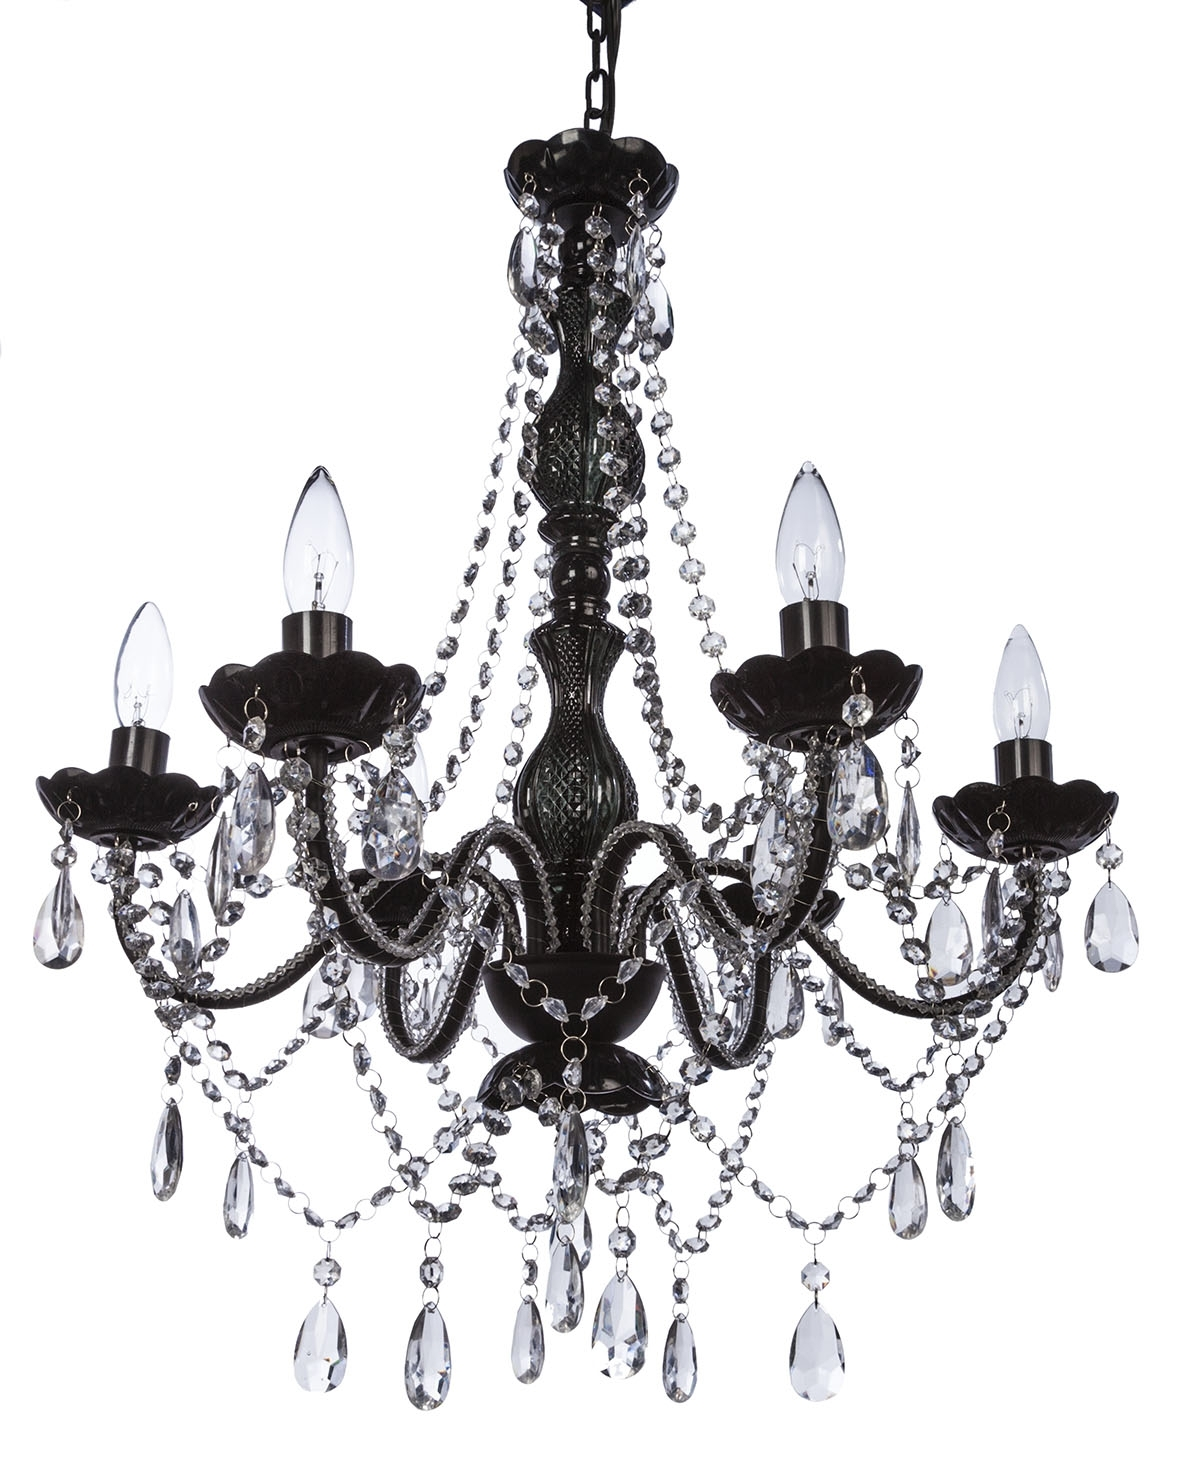 Gypsy Color Regarding Latest Small Gypsy Chandeliers (View 4 of 15)